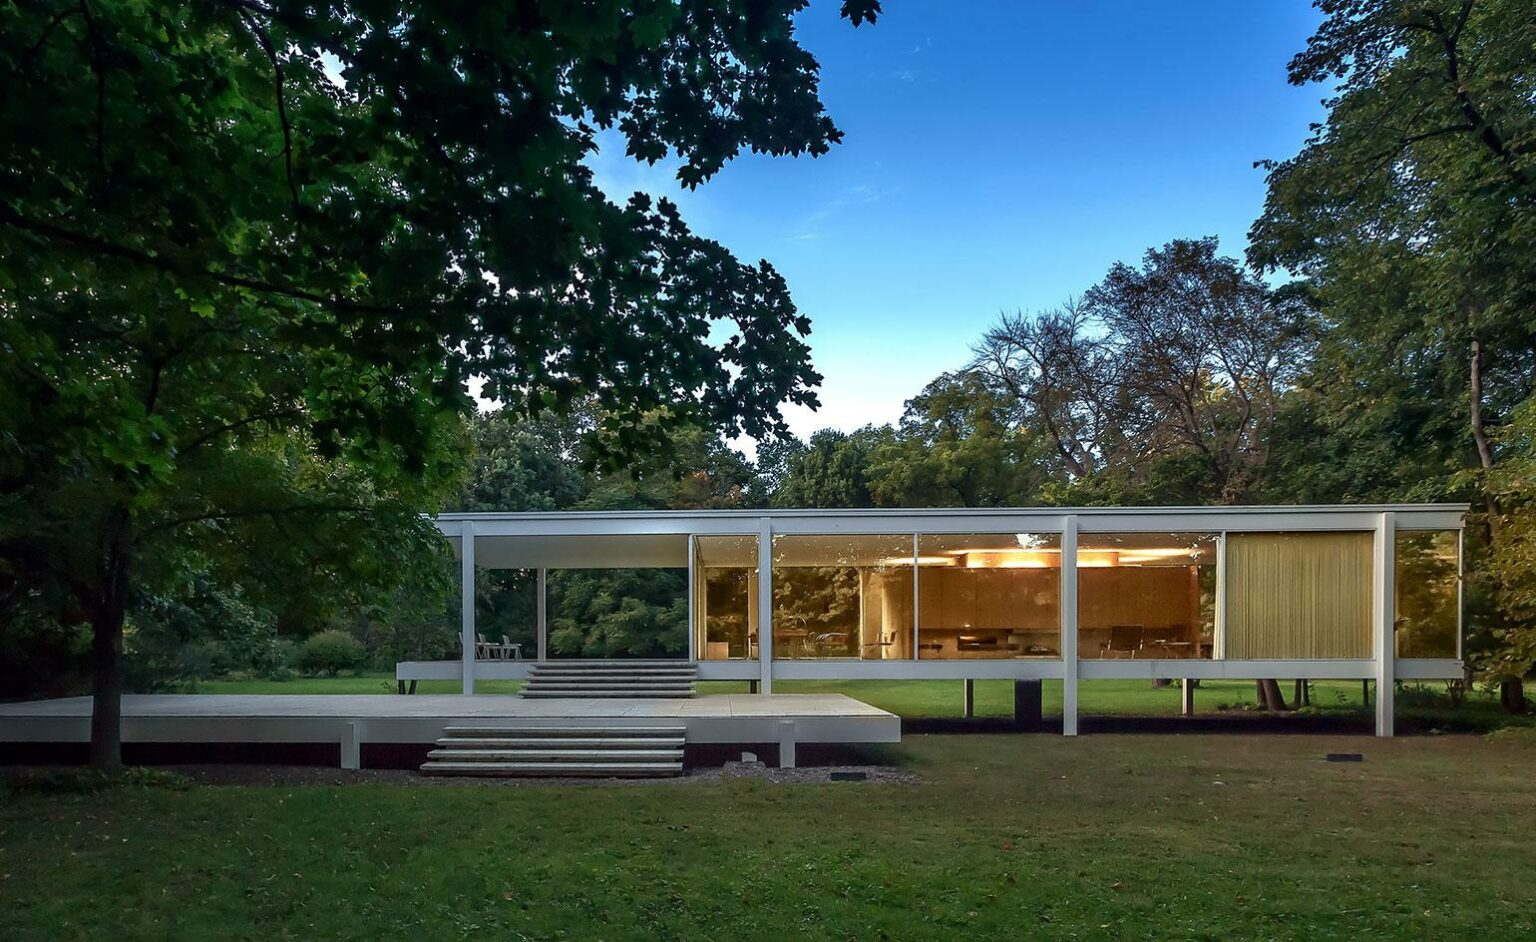 The Farnsworth House designed by Mies van der Rohe